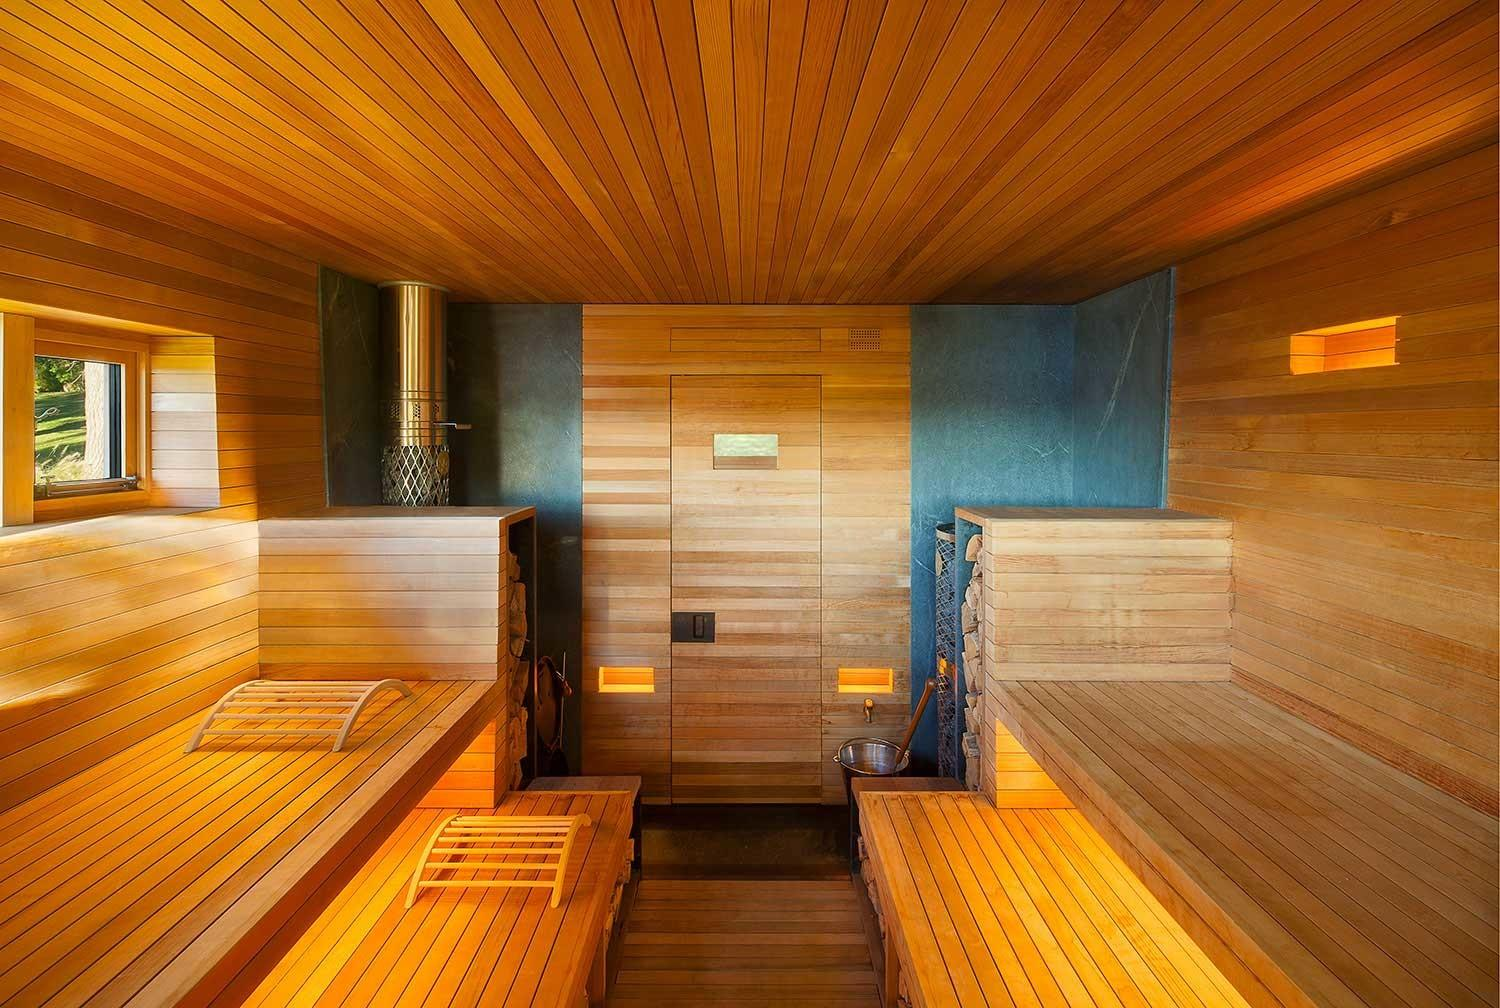 Wooden Sauna Welcomes Guests Sweat Out Stress